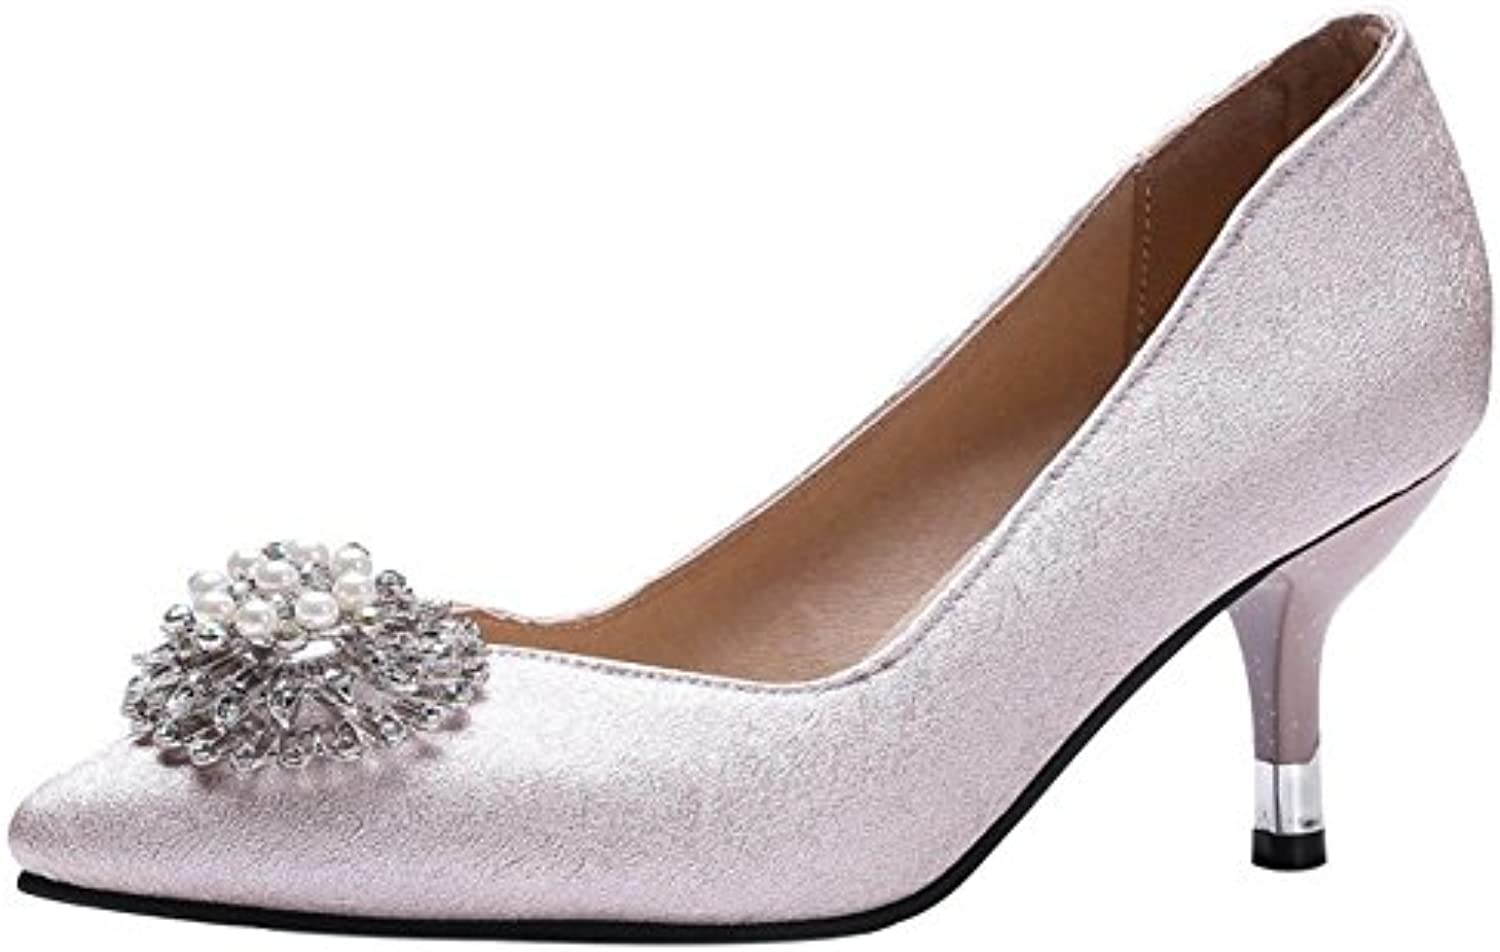 Coolcept Mujer Puntiagudo Pumps Sin Cordones